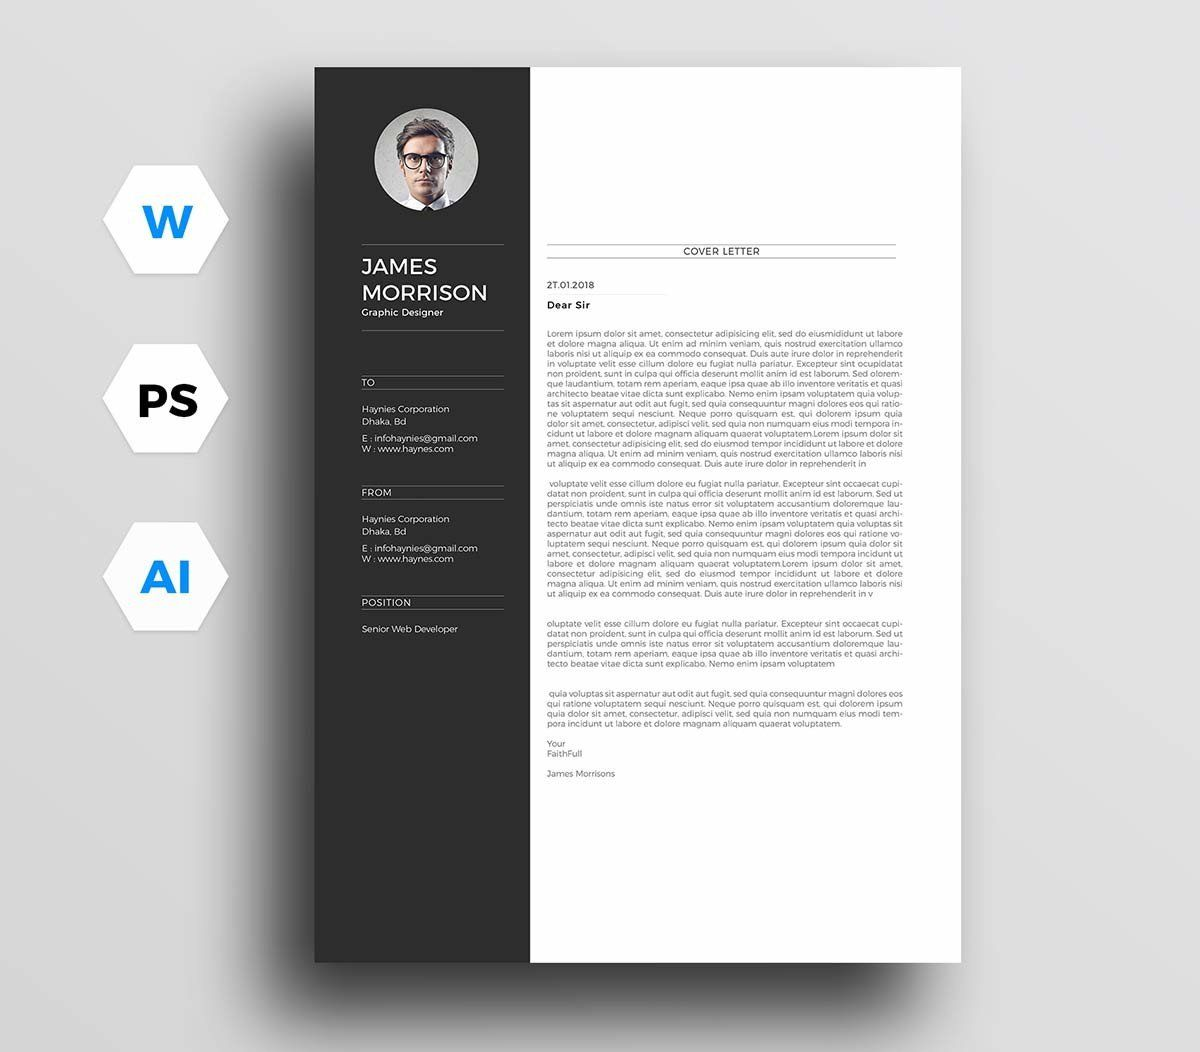 005 Formidable Microsoft Resume Cover Letter Template Free High Definition Full